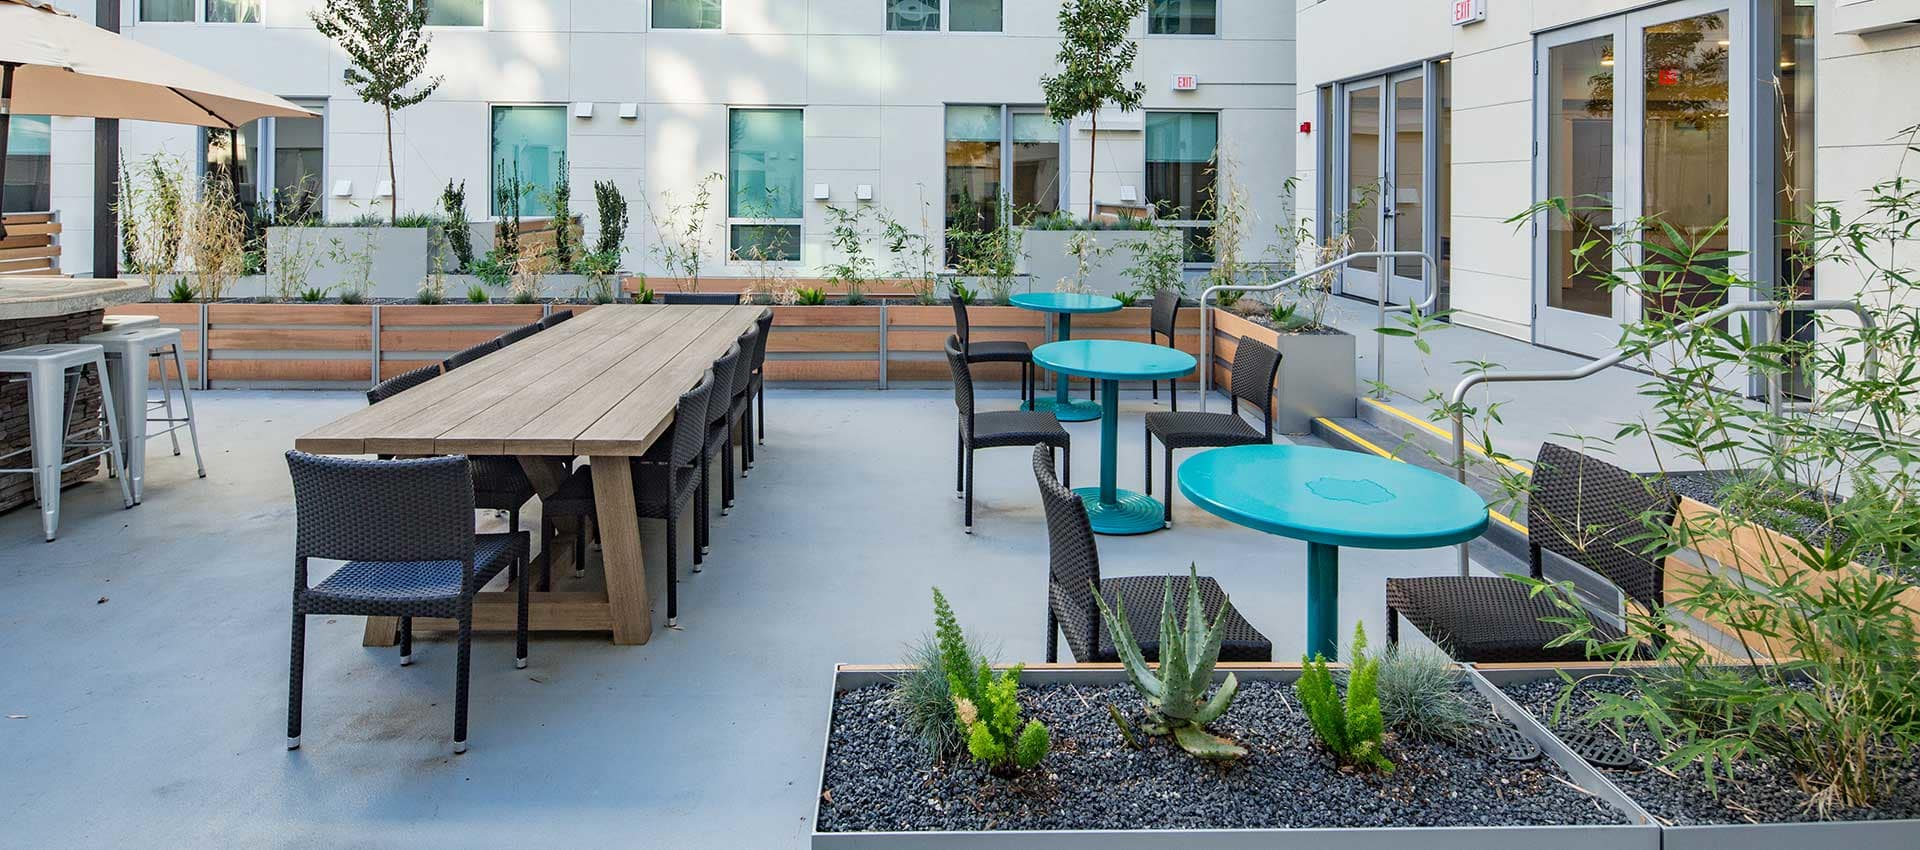 Outdoor tables at EVIVA Midtown